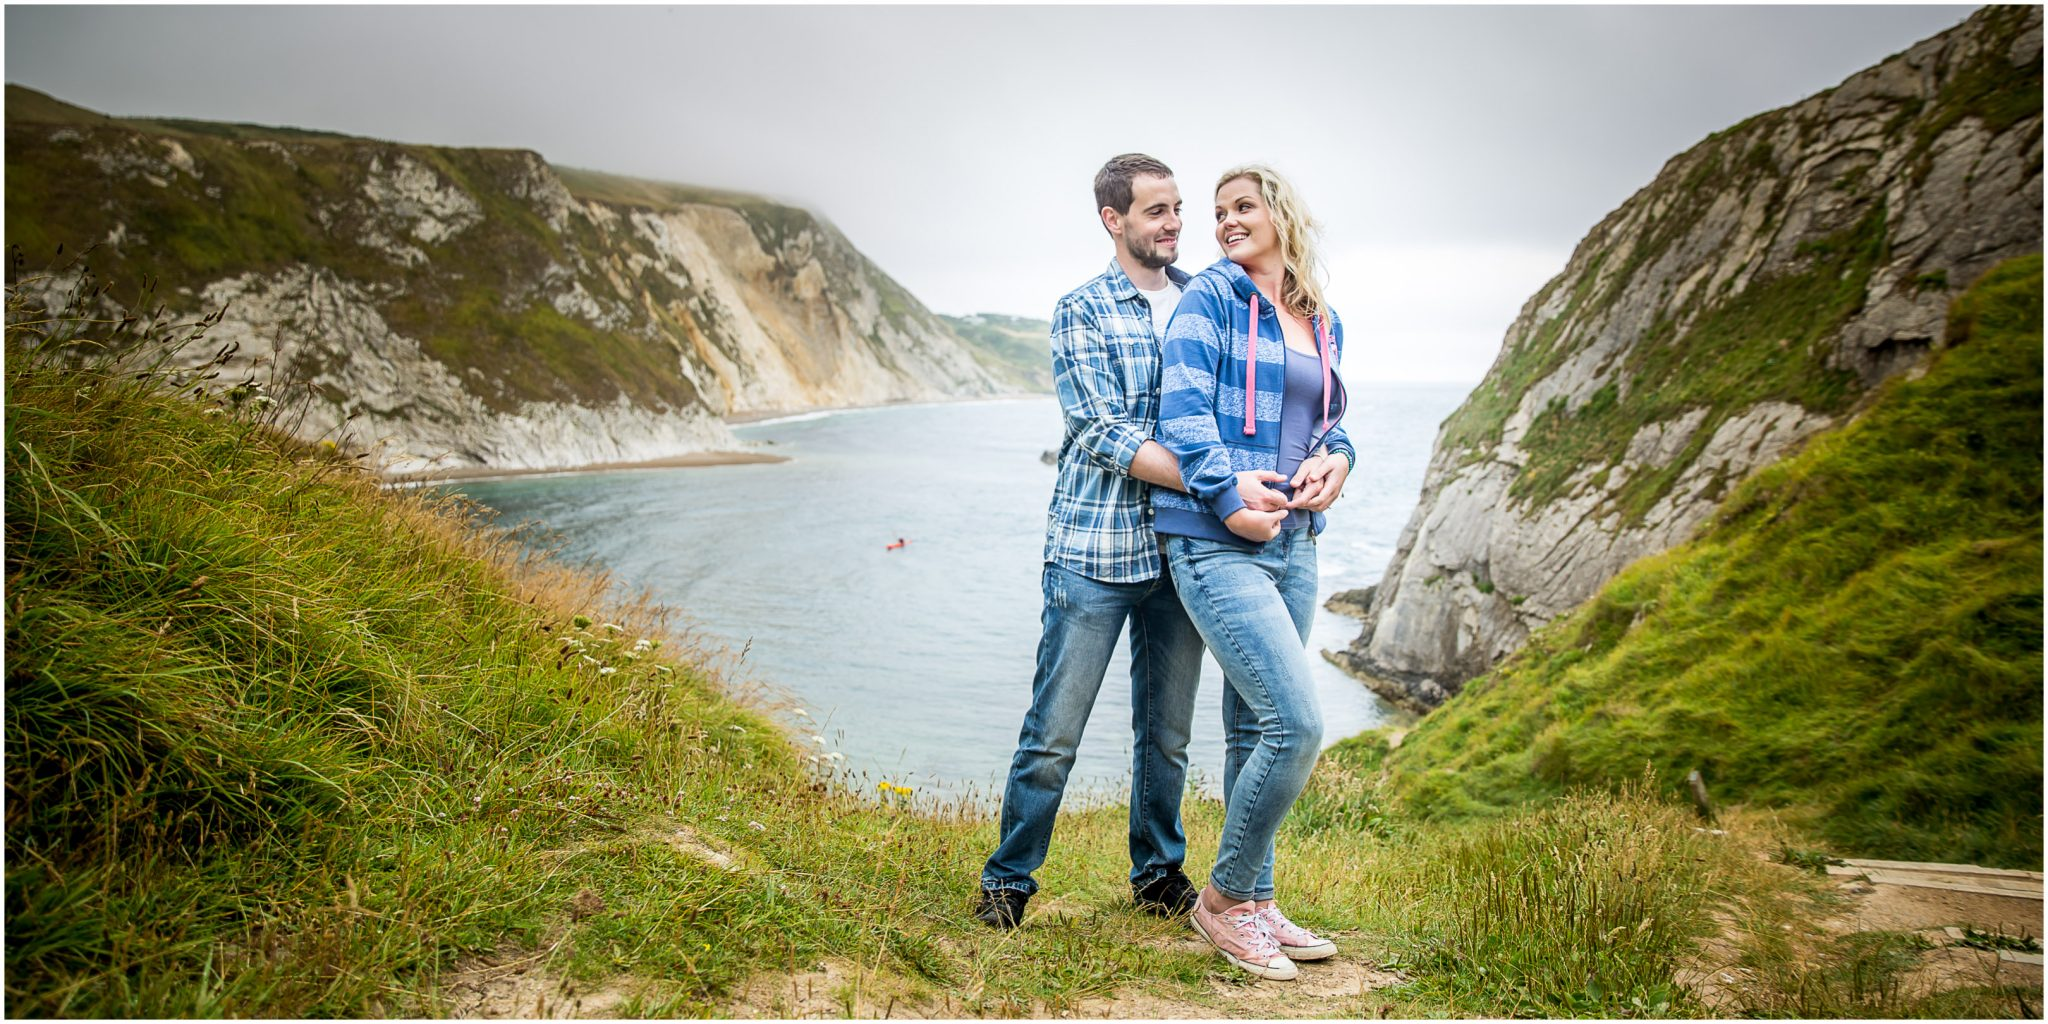 Durdle Door pre-wedding photography